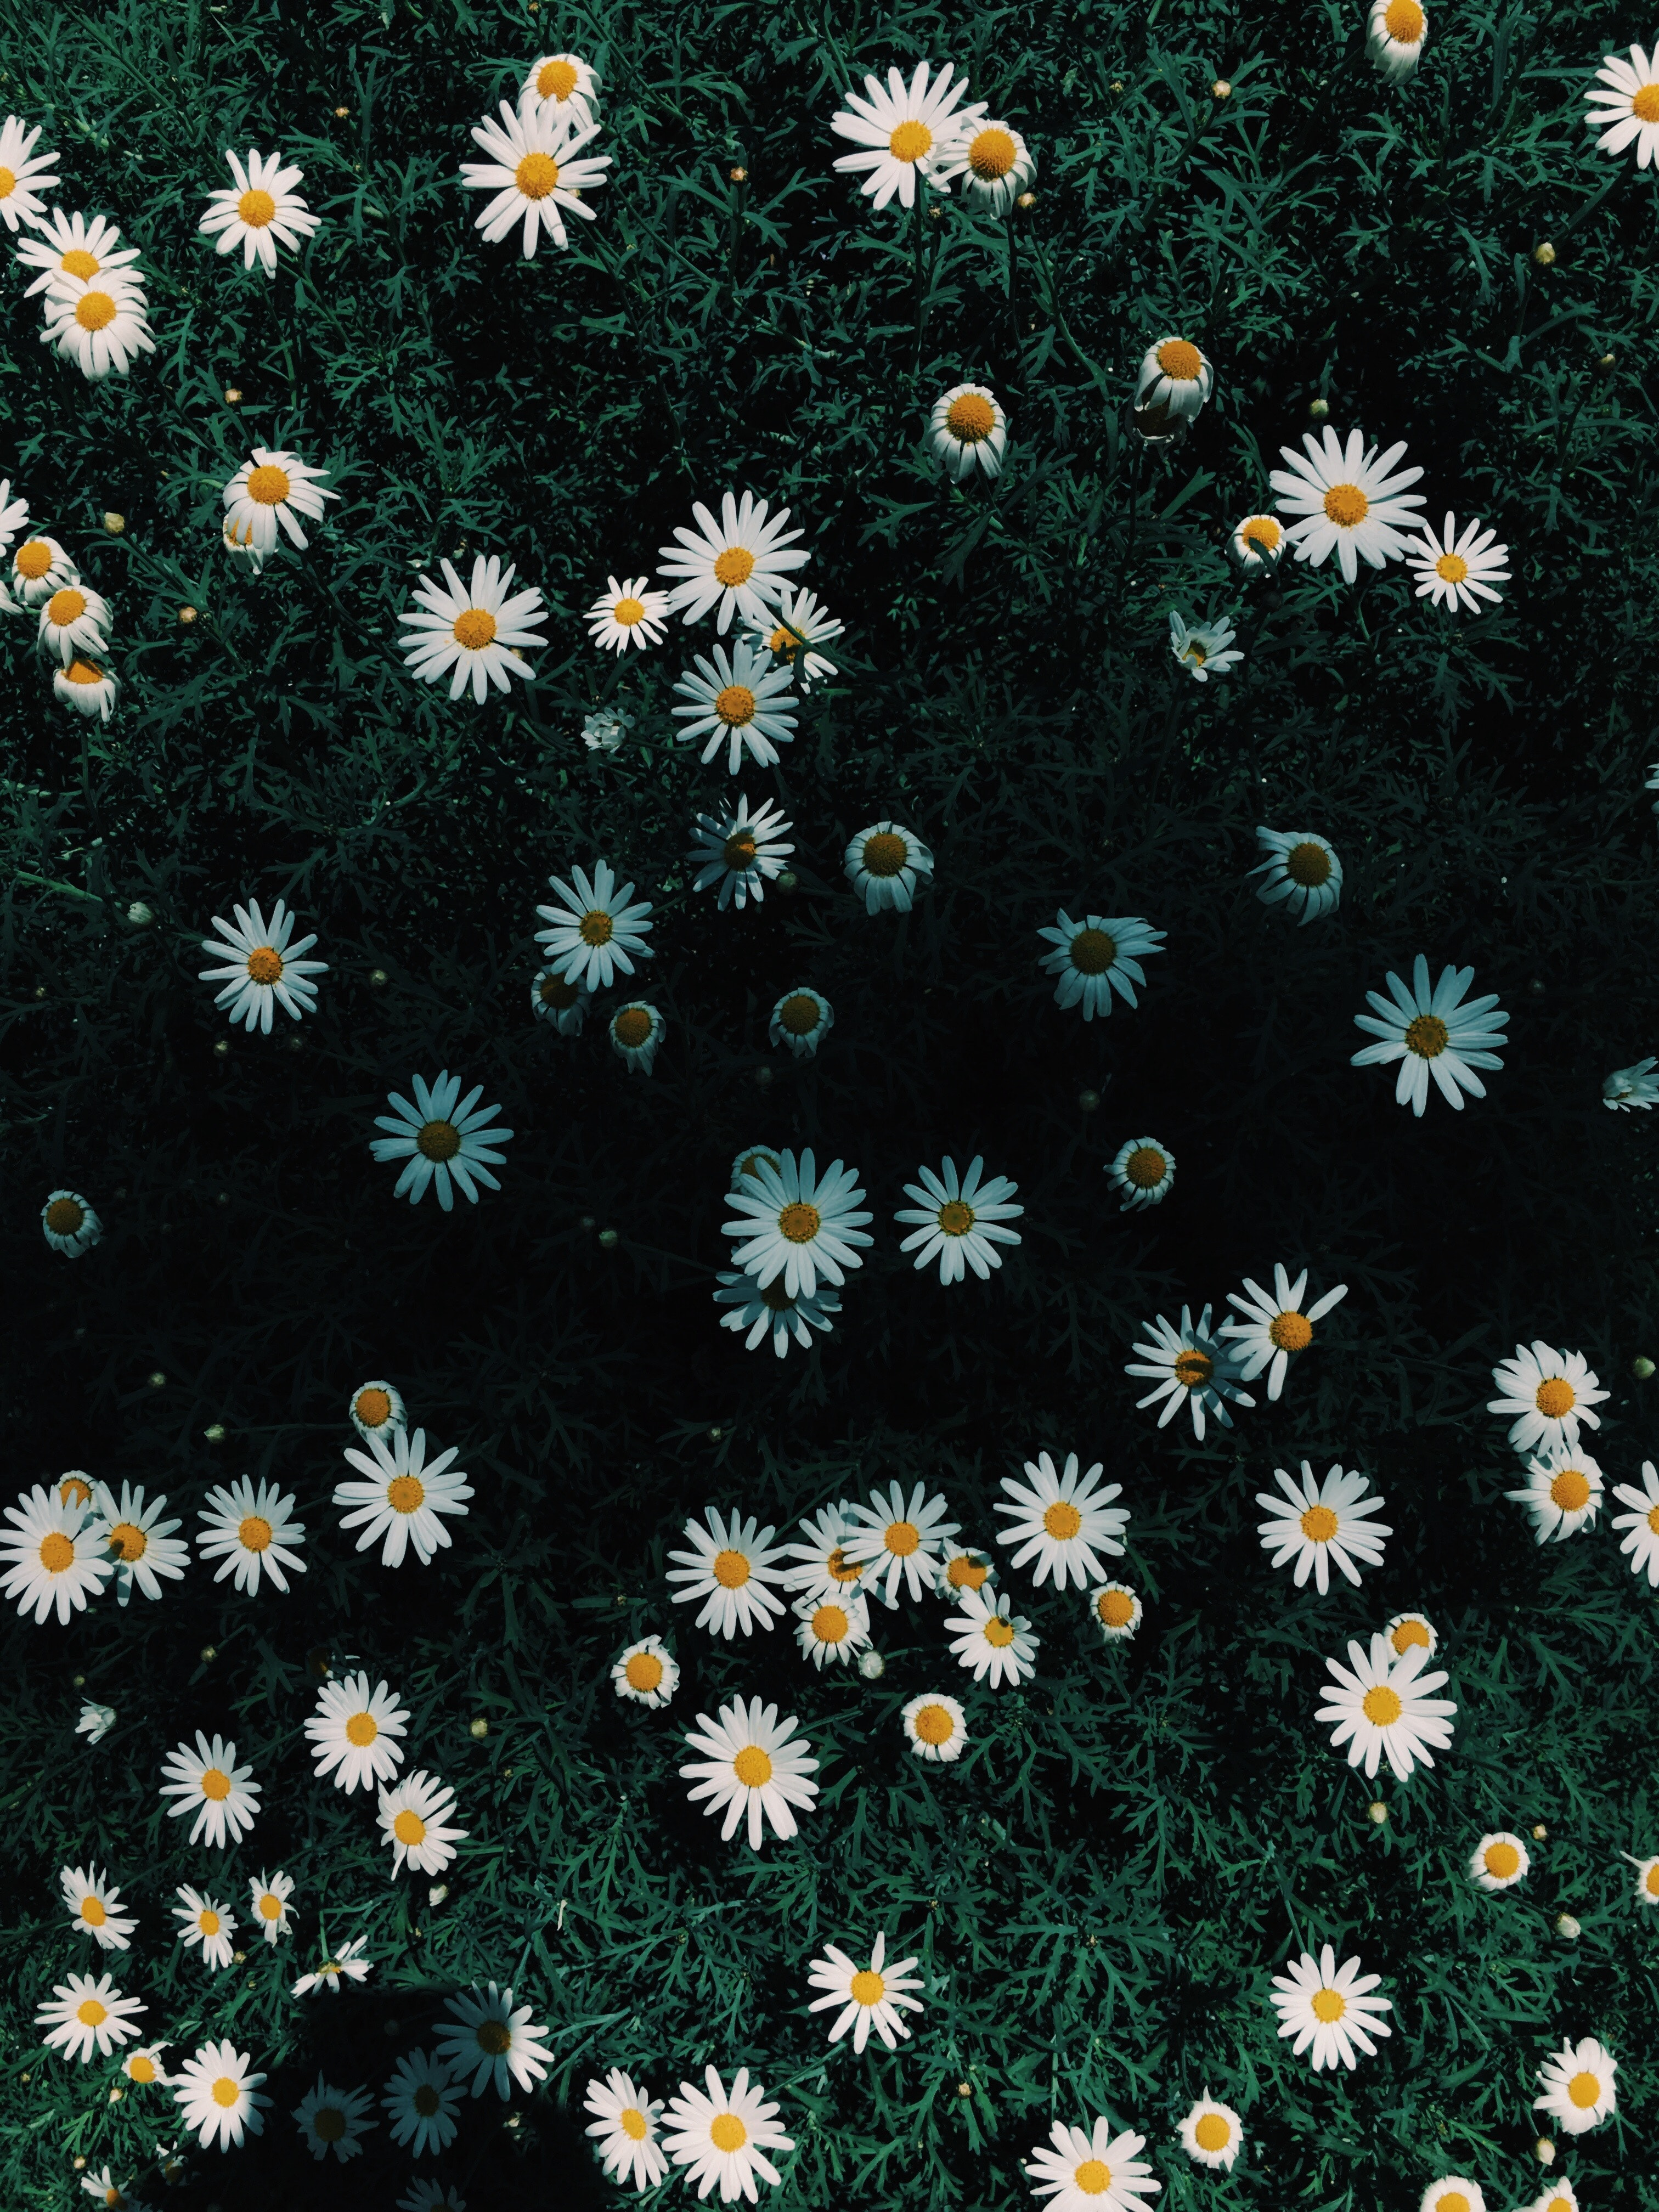 200 amazing daisy photos pexels free stock photos fetching more photos izmirmasajfo